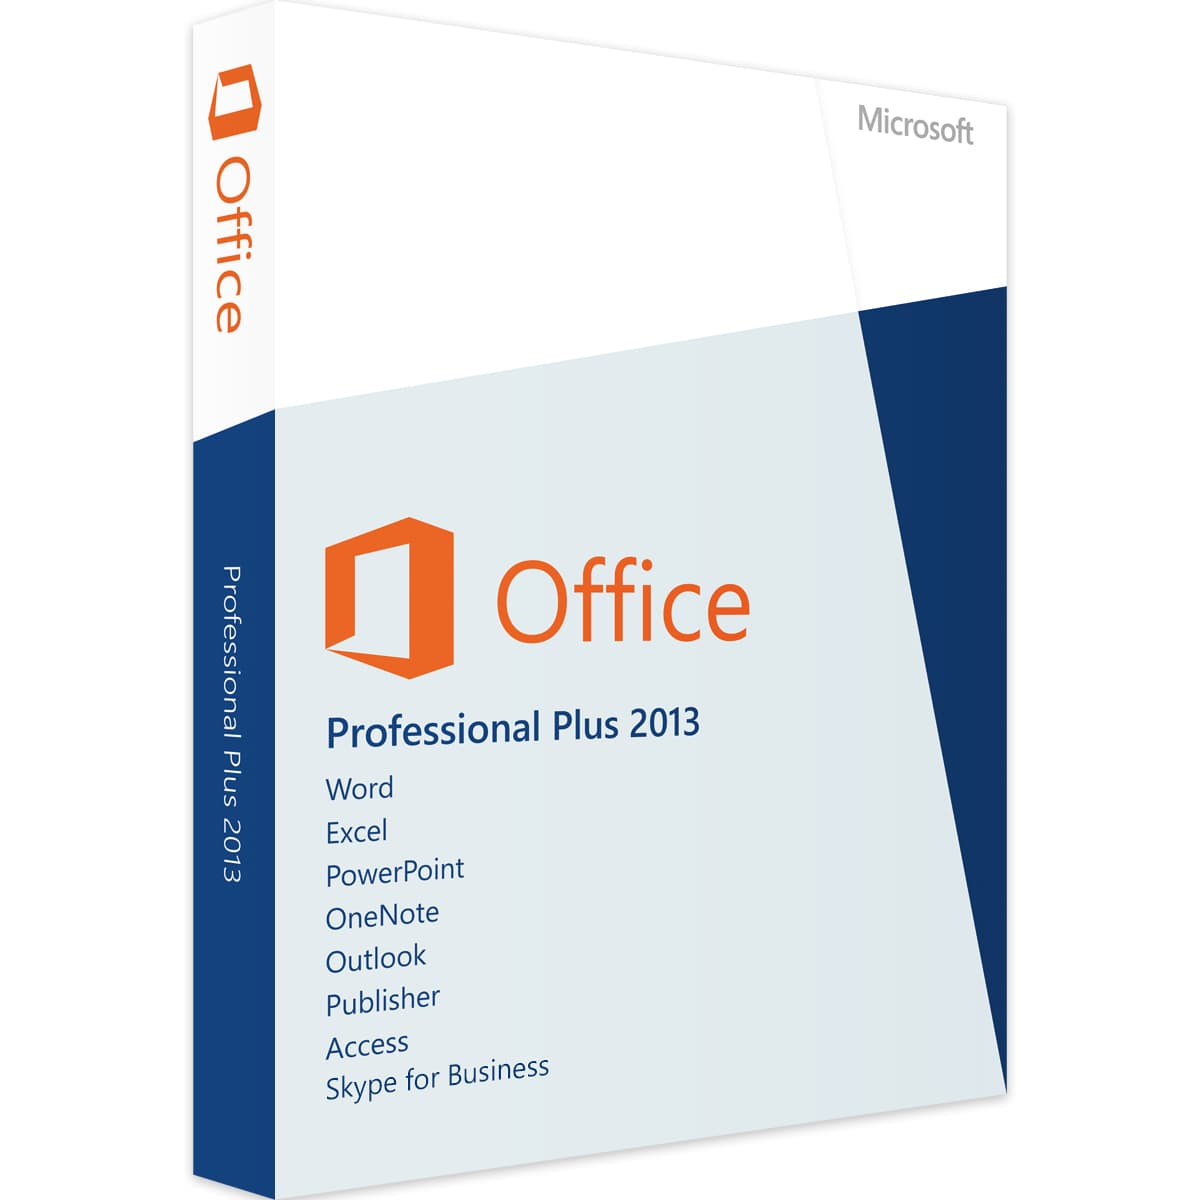 office-professional-plus-2013-min